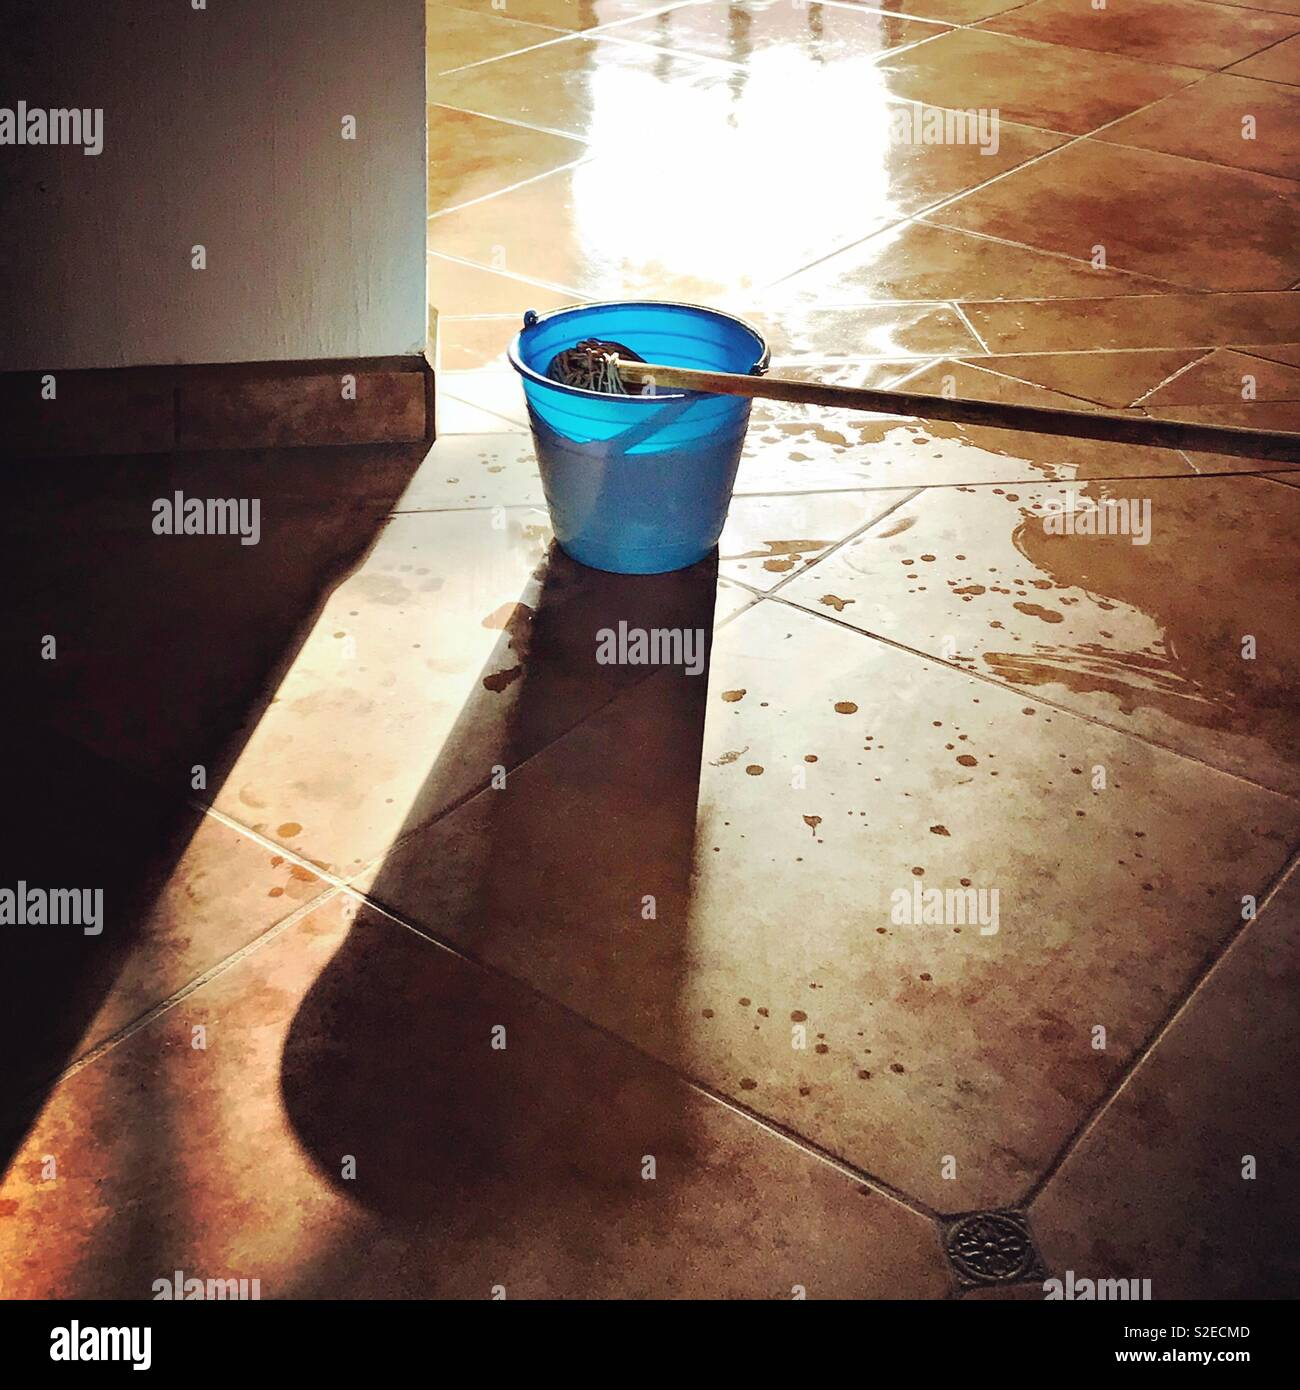 Sunlight pours through a window highlighting a blue bucket and a mop on a tile floor. - Stock Image